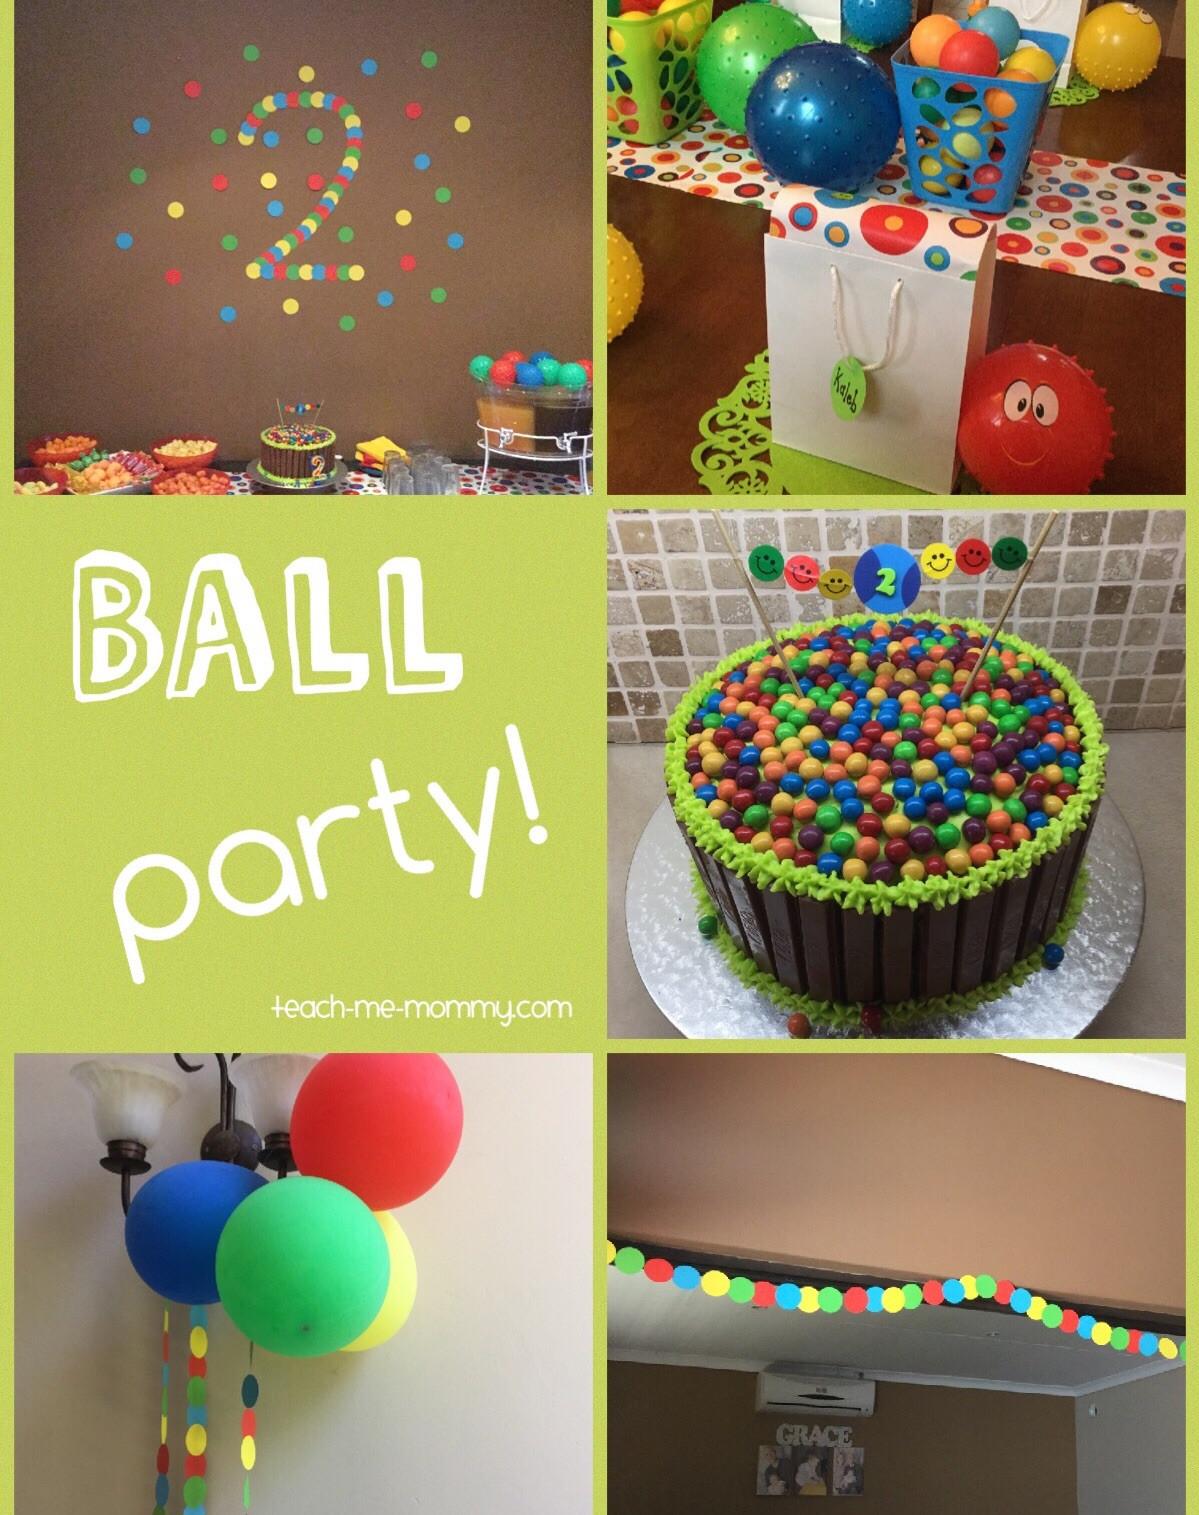 Food Ideas For A 2 Year Old Birthday Party  Ball Themed Party for a 2 Year Old Teach Me Mommy